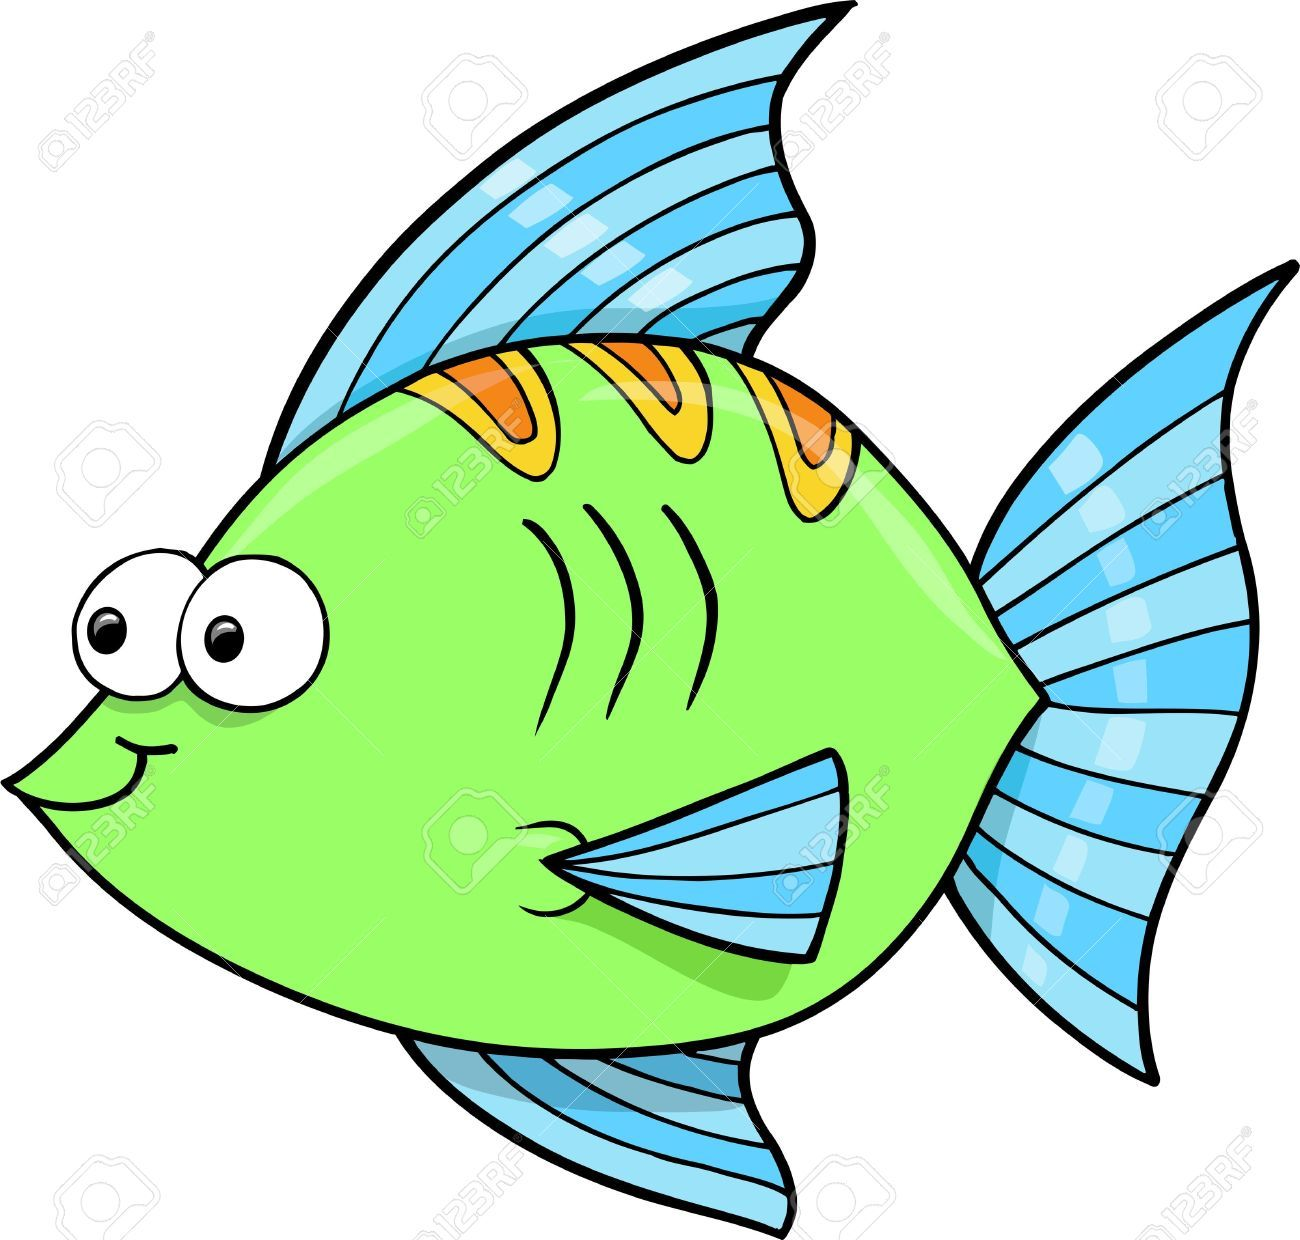 12413893 Cute Goofy Fish Ocean Vector Illustration Stock